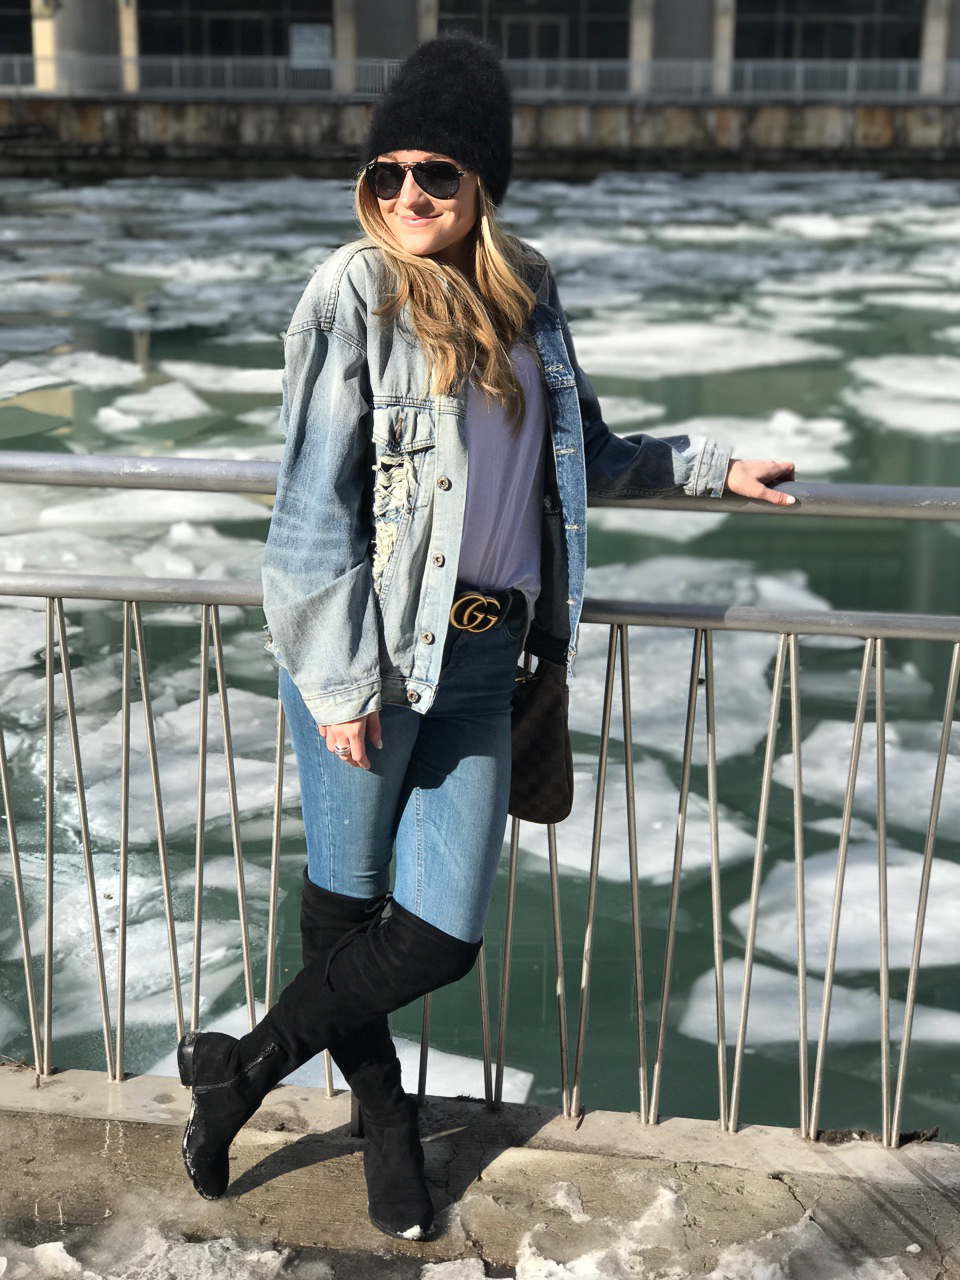 For a day time look, I paired my outfit with a chunky belt, cozy hat & over the knee boots.